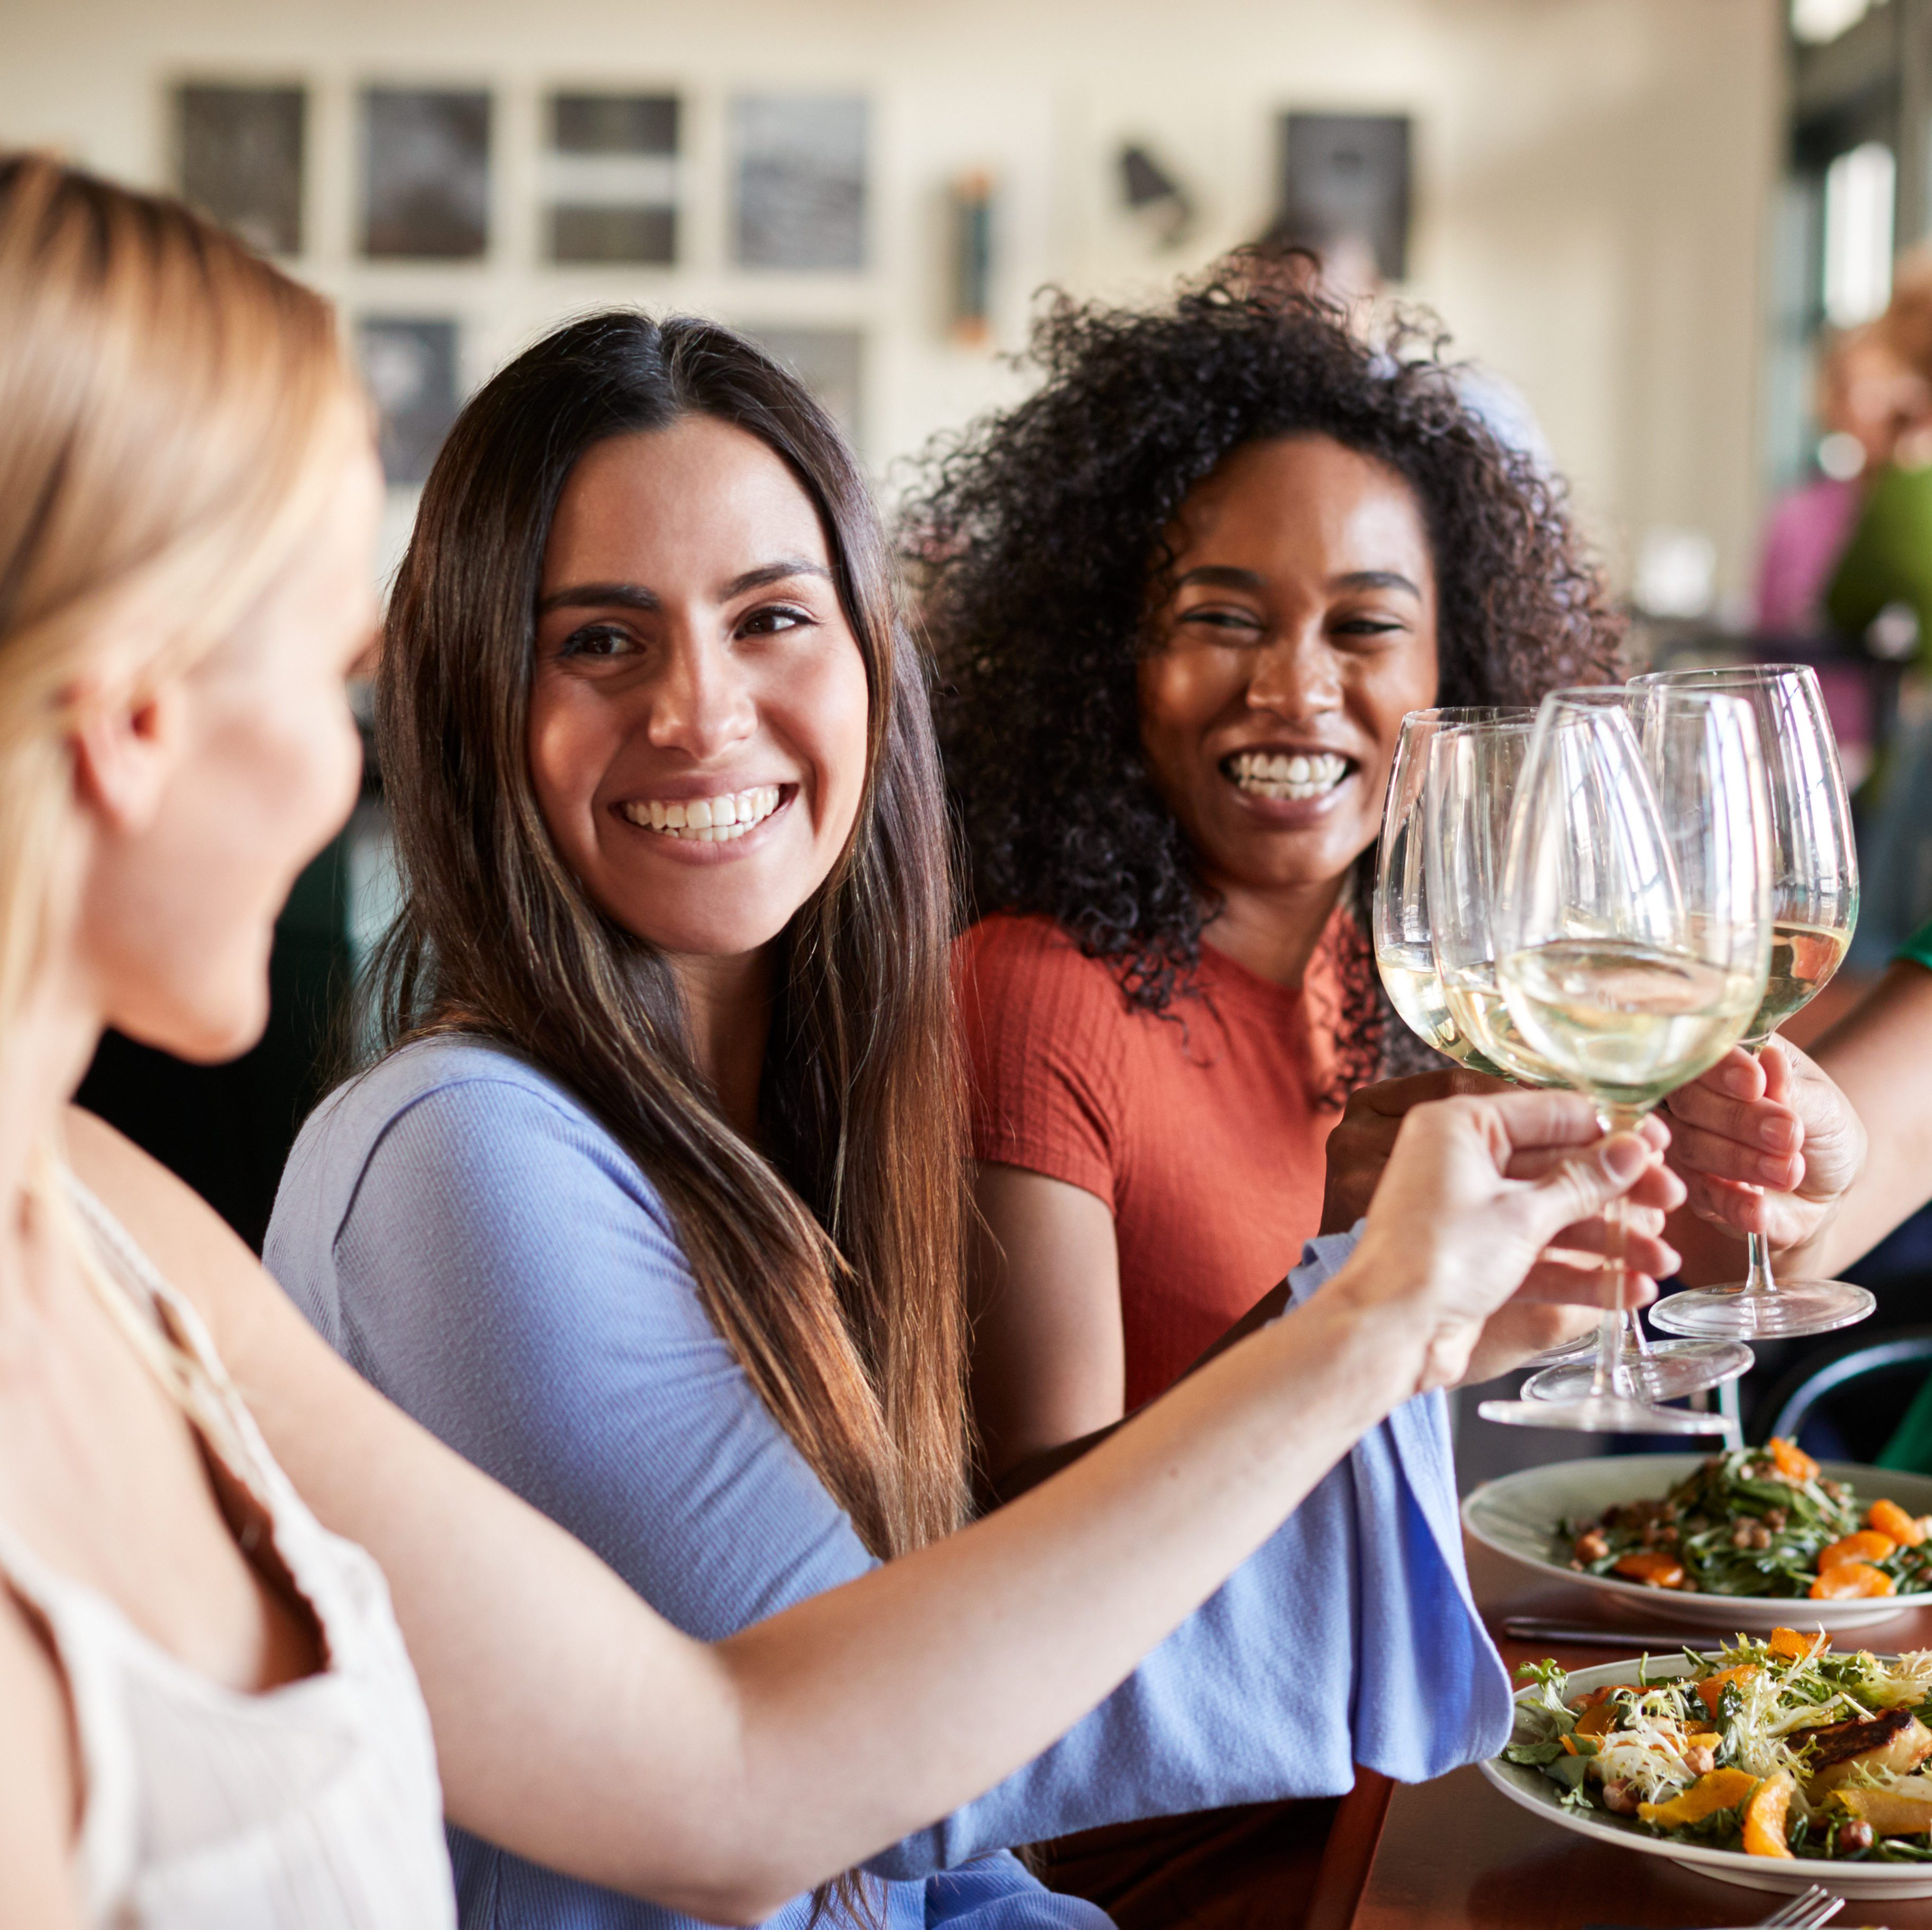 Group Of Female Friends Making A Toast At Meal In Restaurant